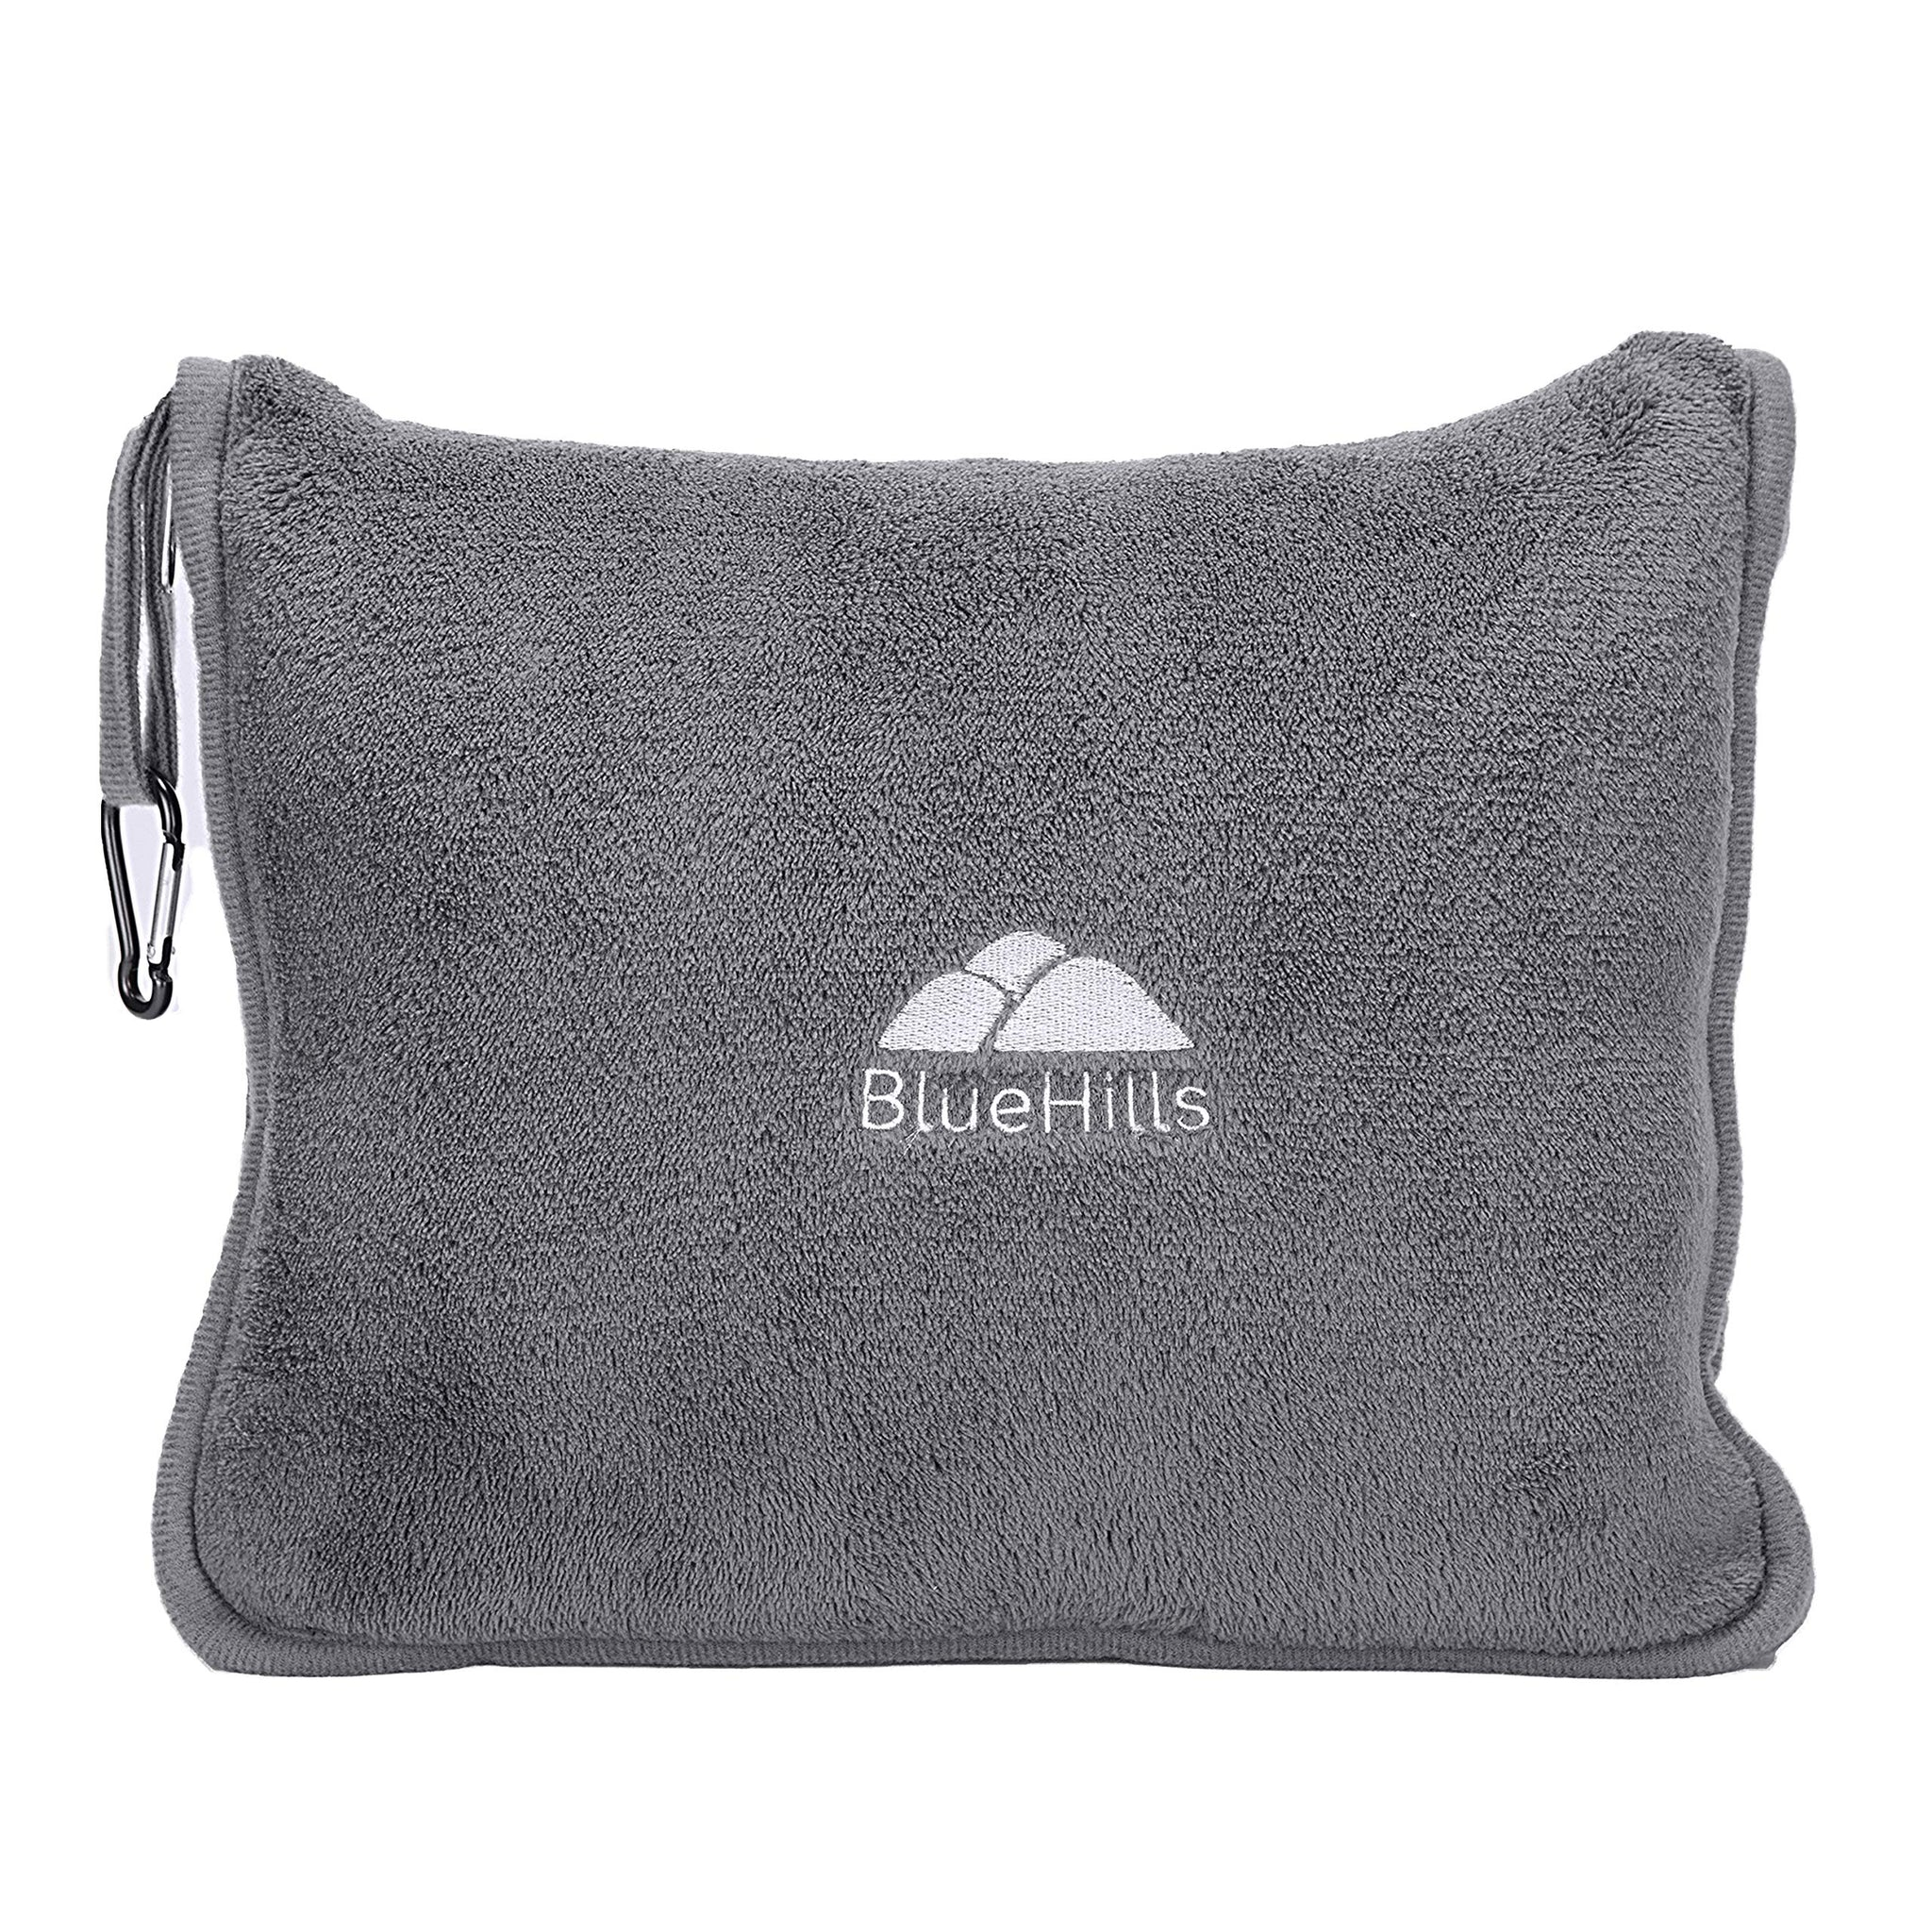 BlueHills Premium Soft Travel Blanket Pillow Airplane Flight Blanket throw in Soft Bag Pillow case with Hand Luggage Belt and Backpack Clip Compact Pack Large Blanket for Travel Grey Color (Gray T007)